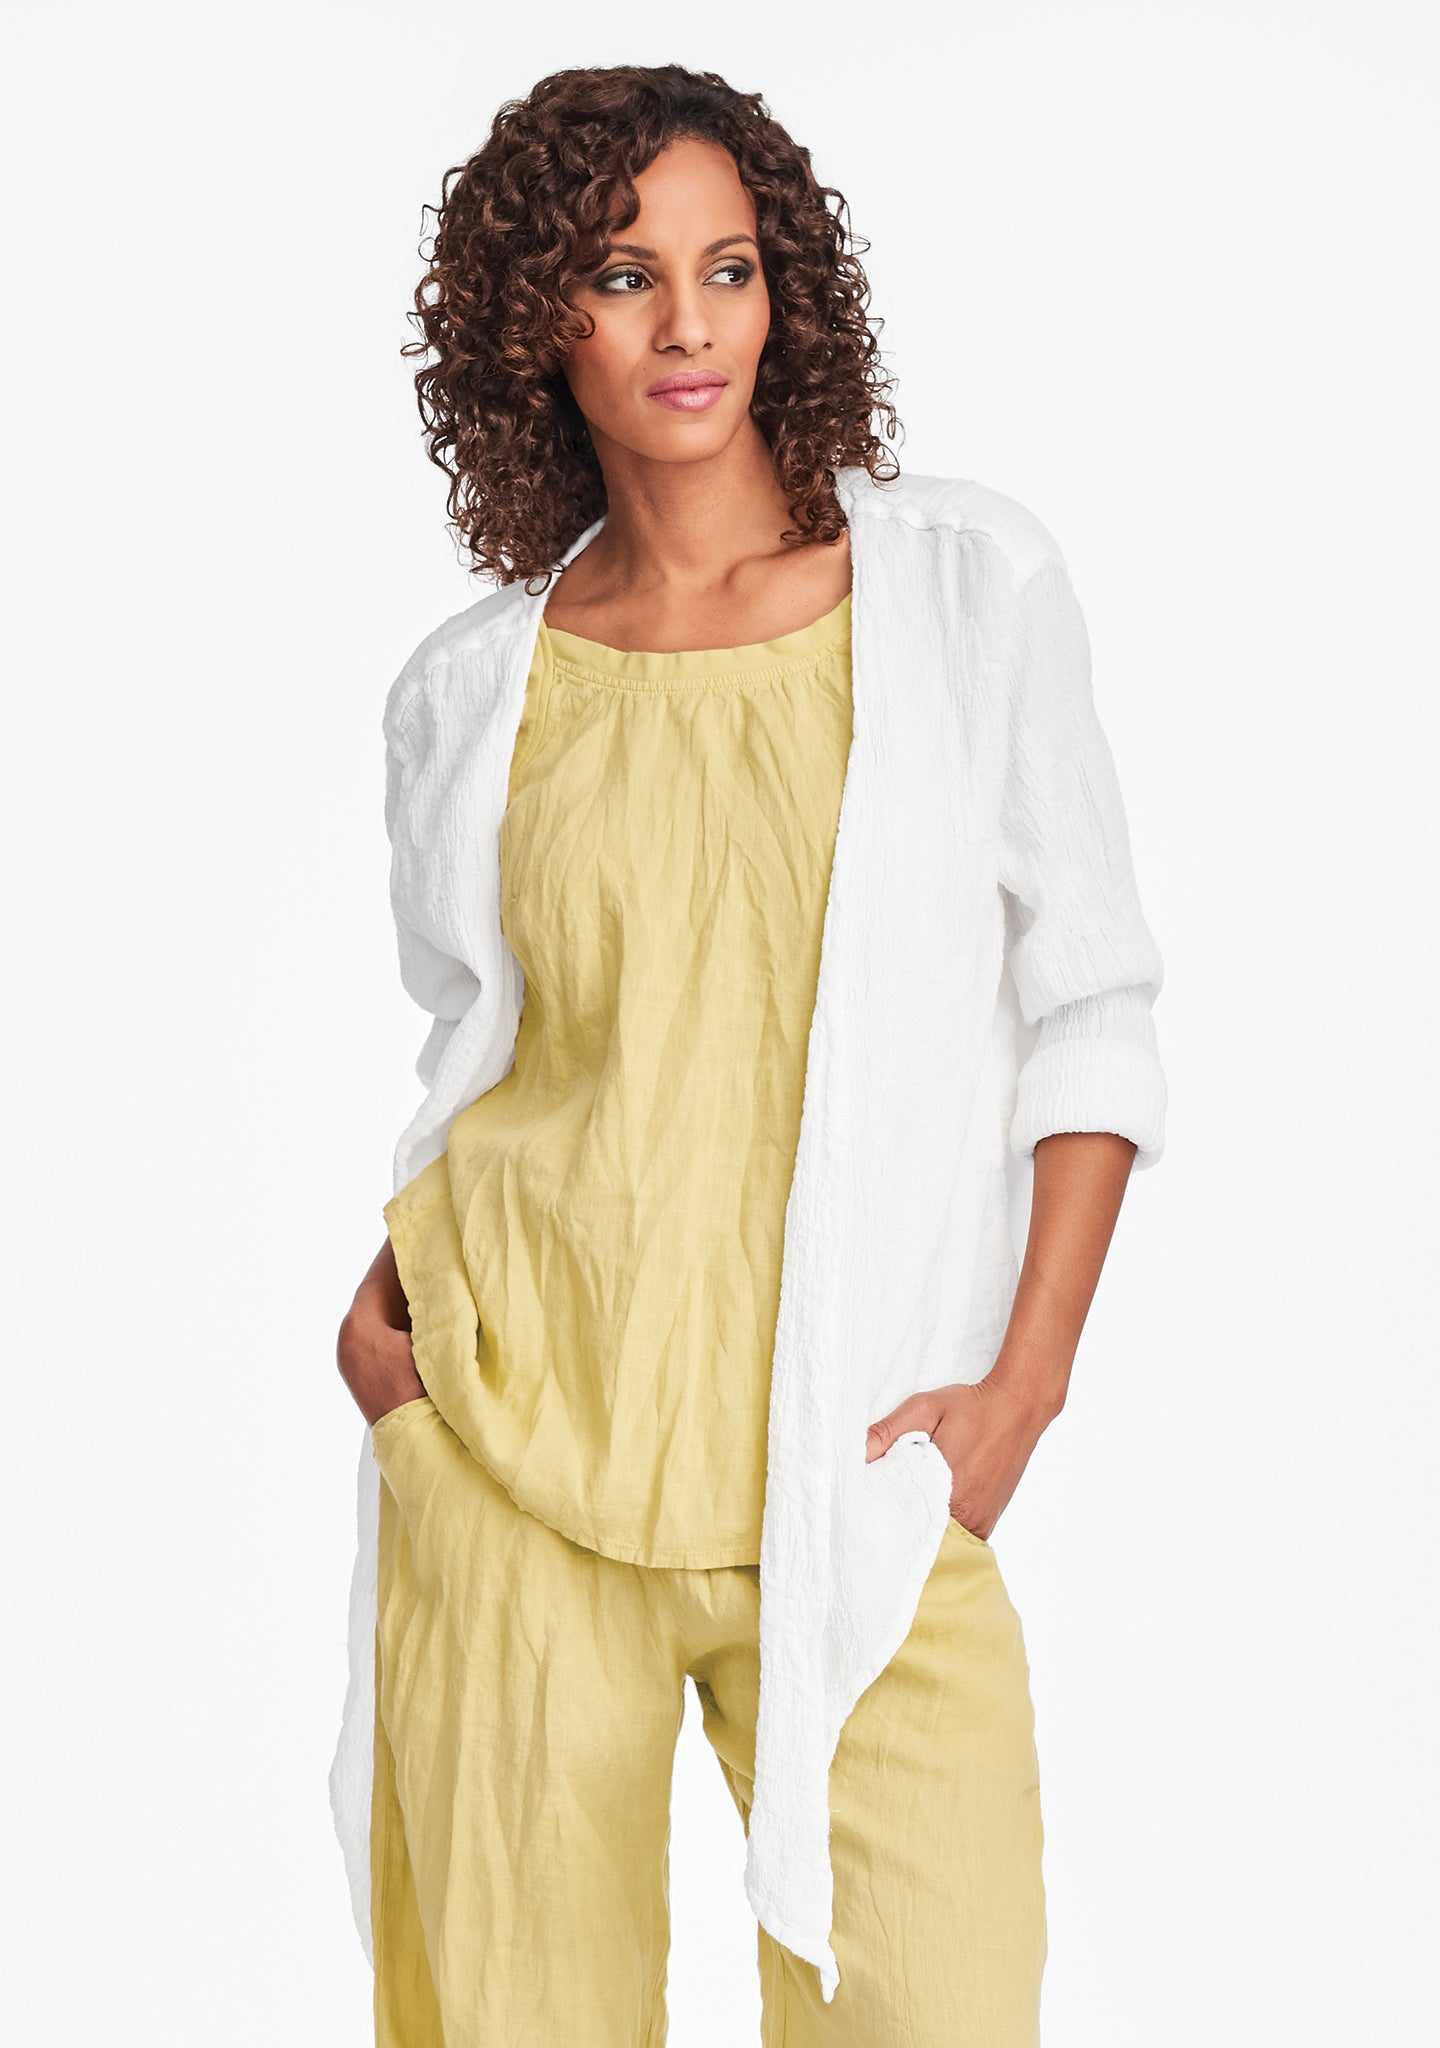 urban shrug linen cardigan white